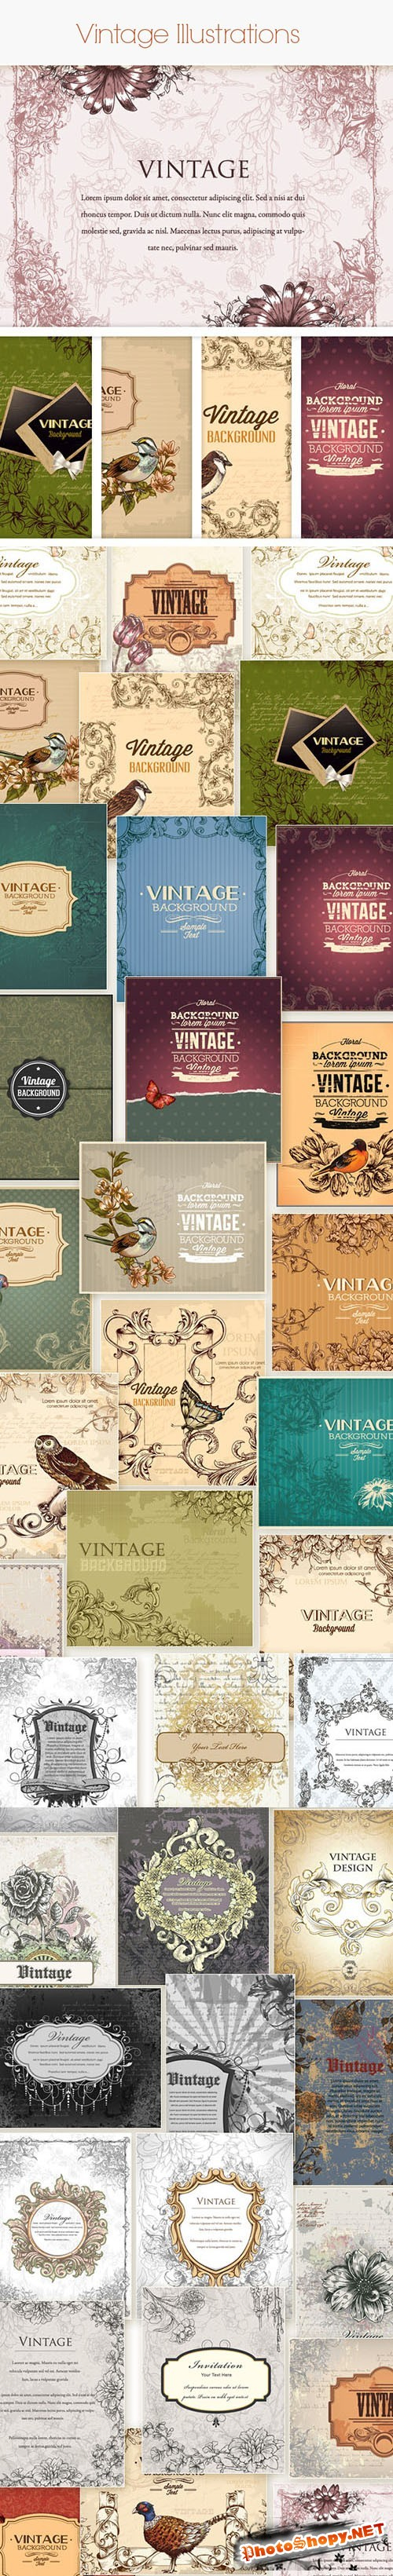 Vintage Vector Stock Illustrations Bundle